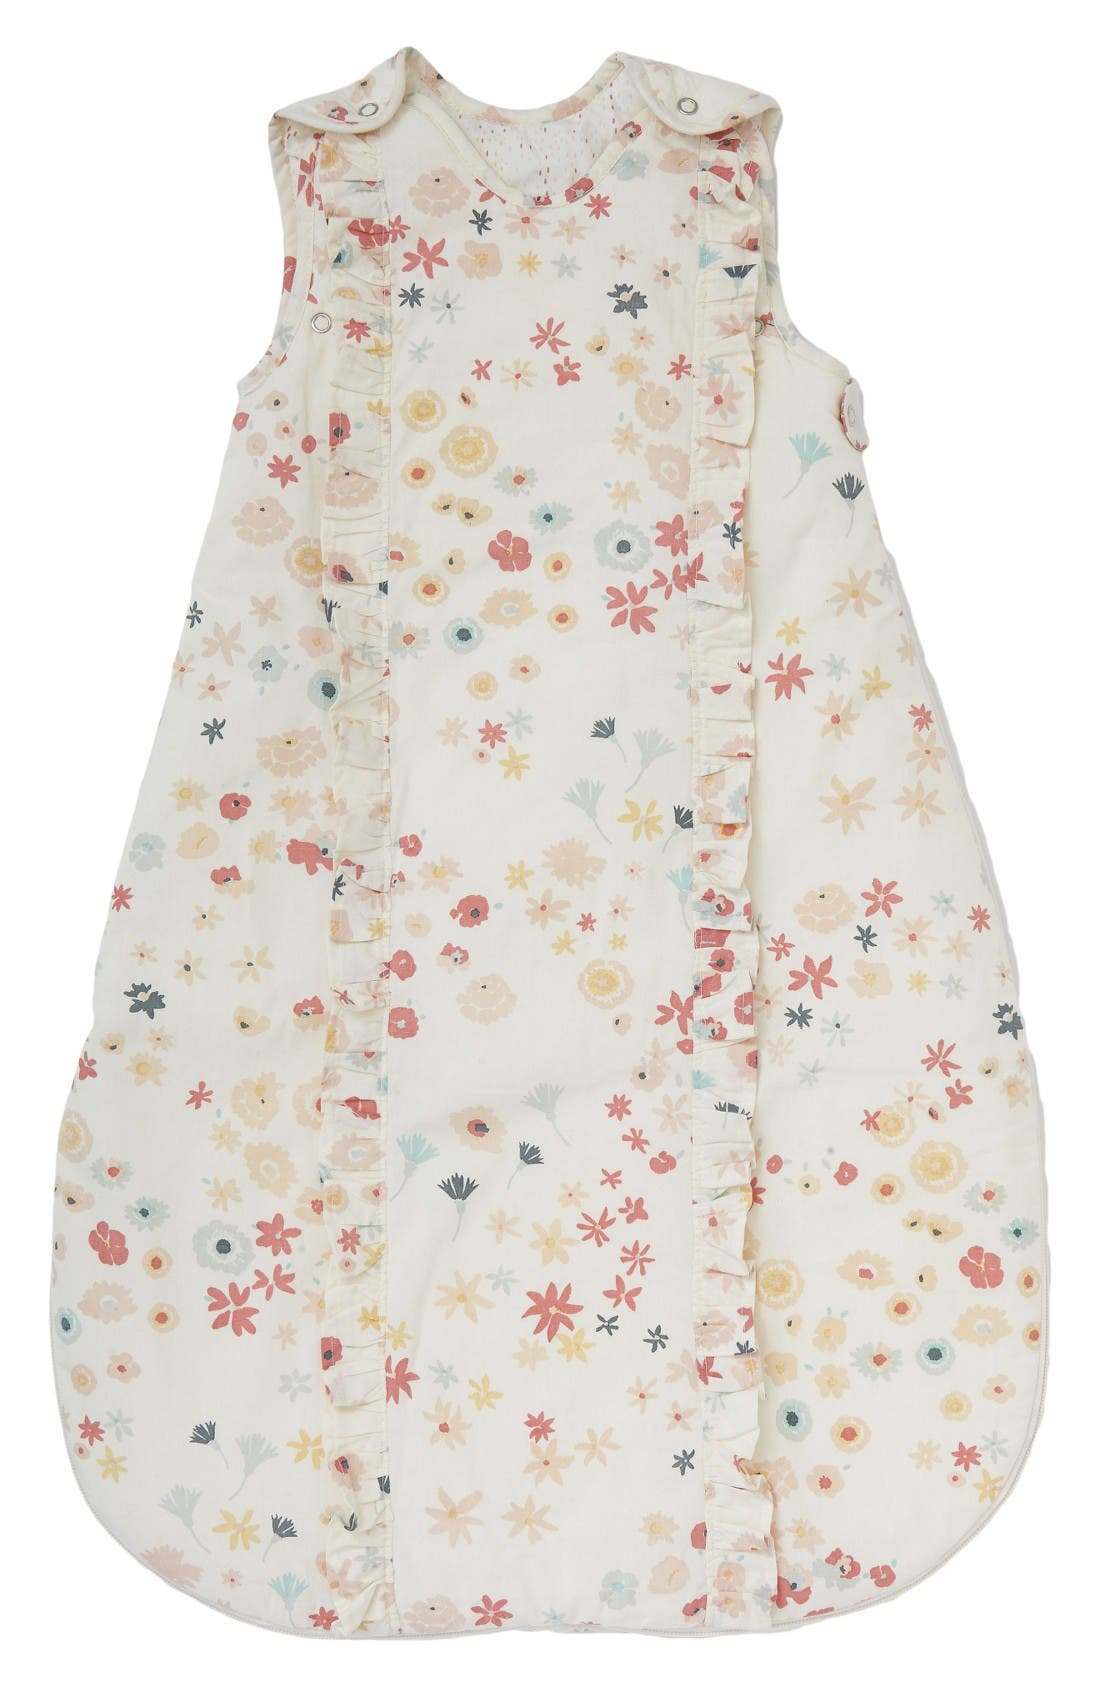 Alternate Image 1 Selected - Petit Pehr Meadow Print Cotton Wearable Blanket (Baby)